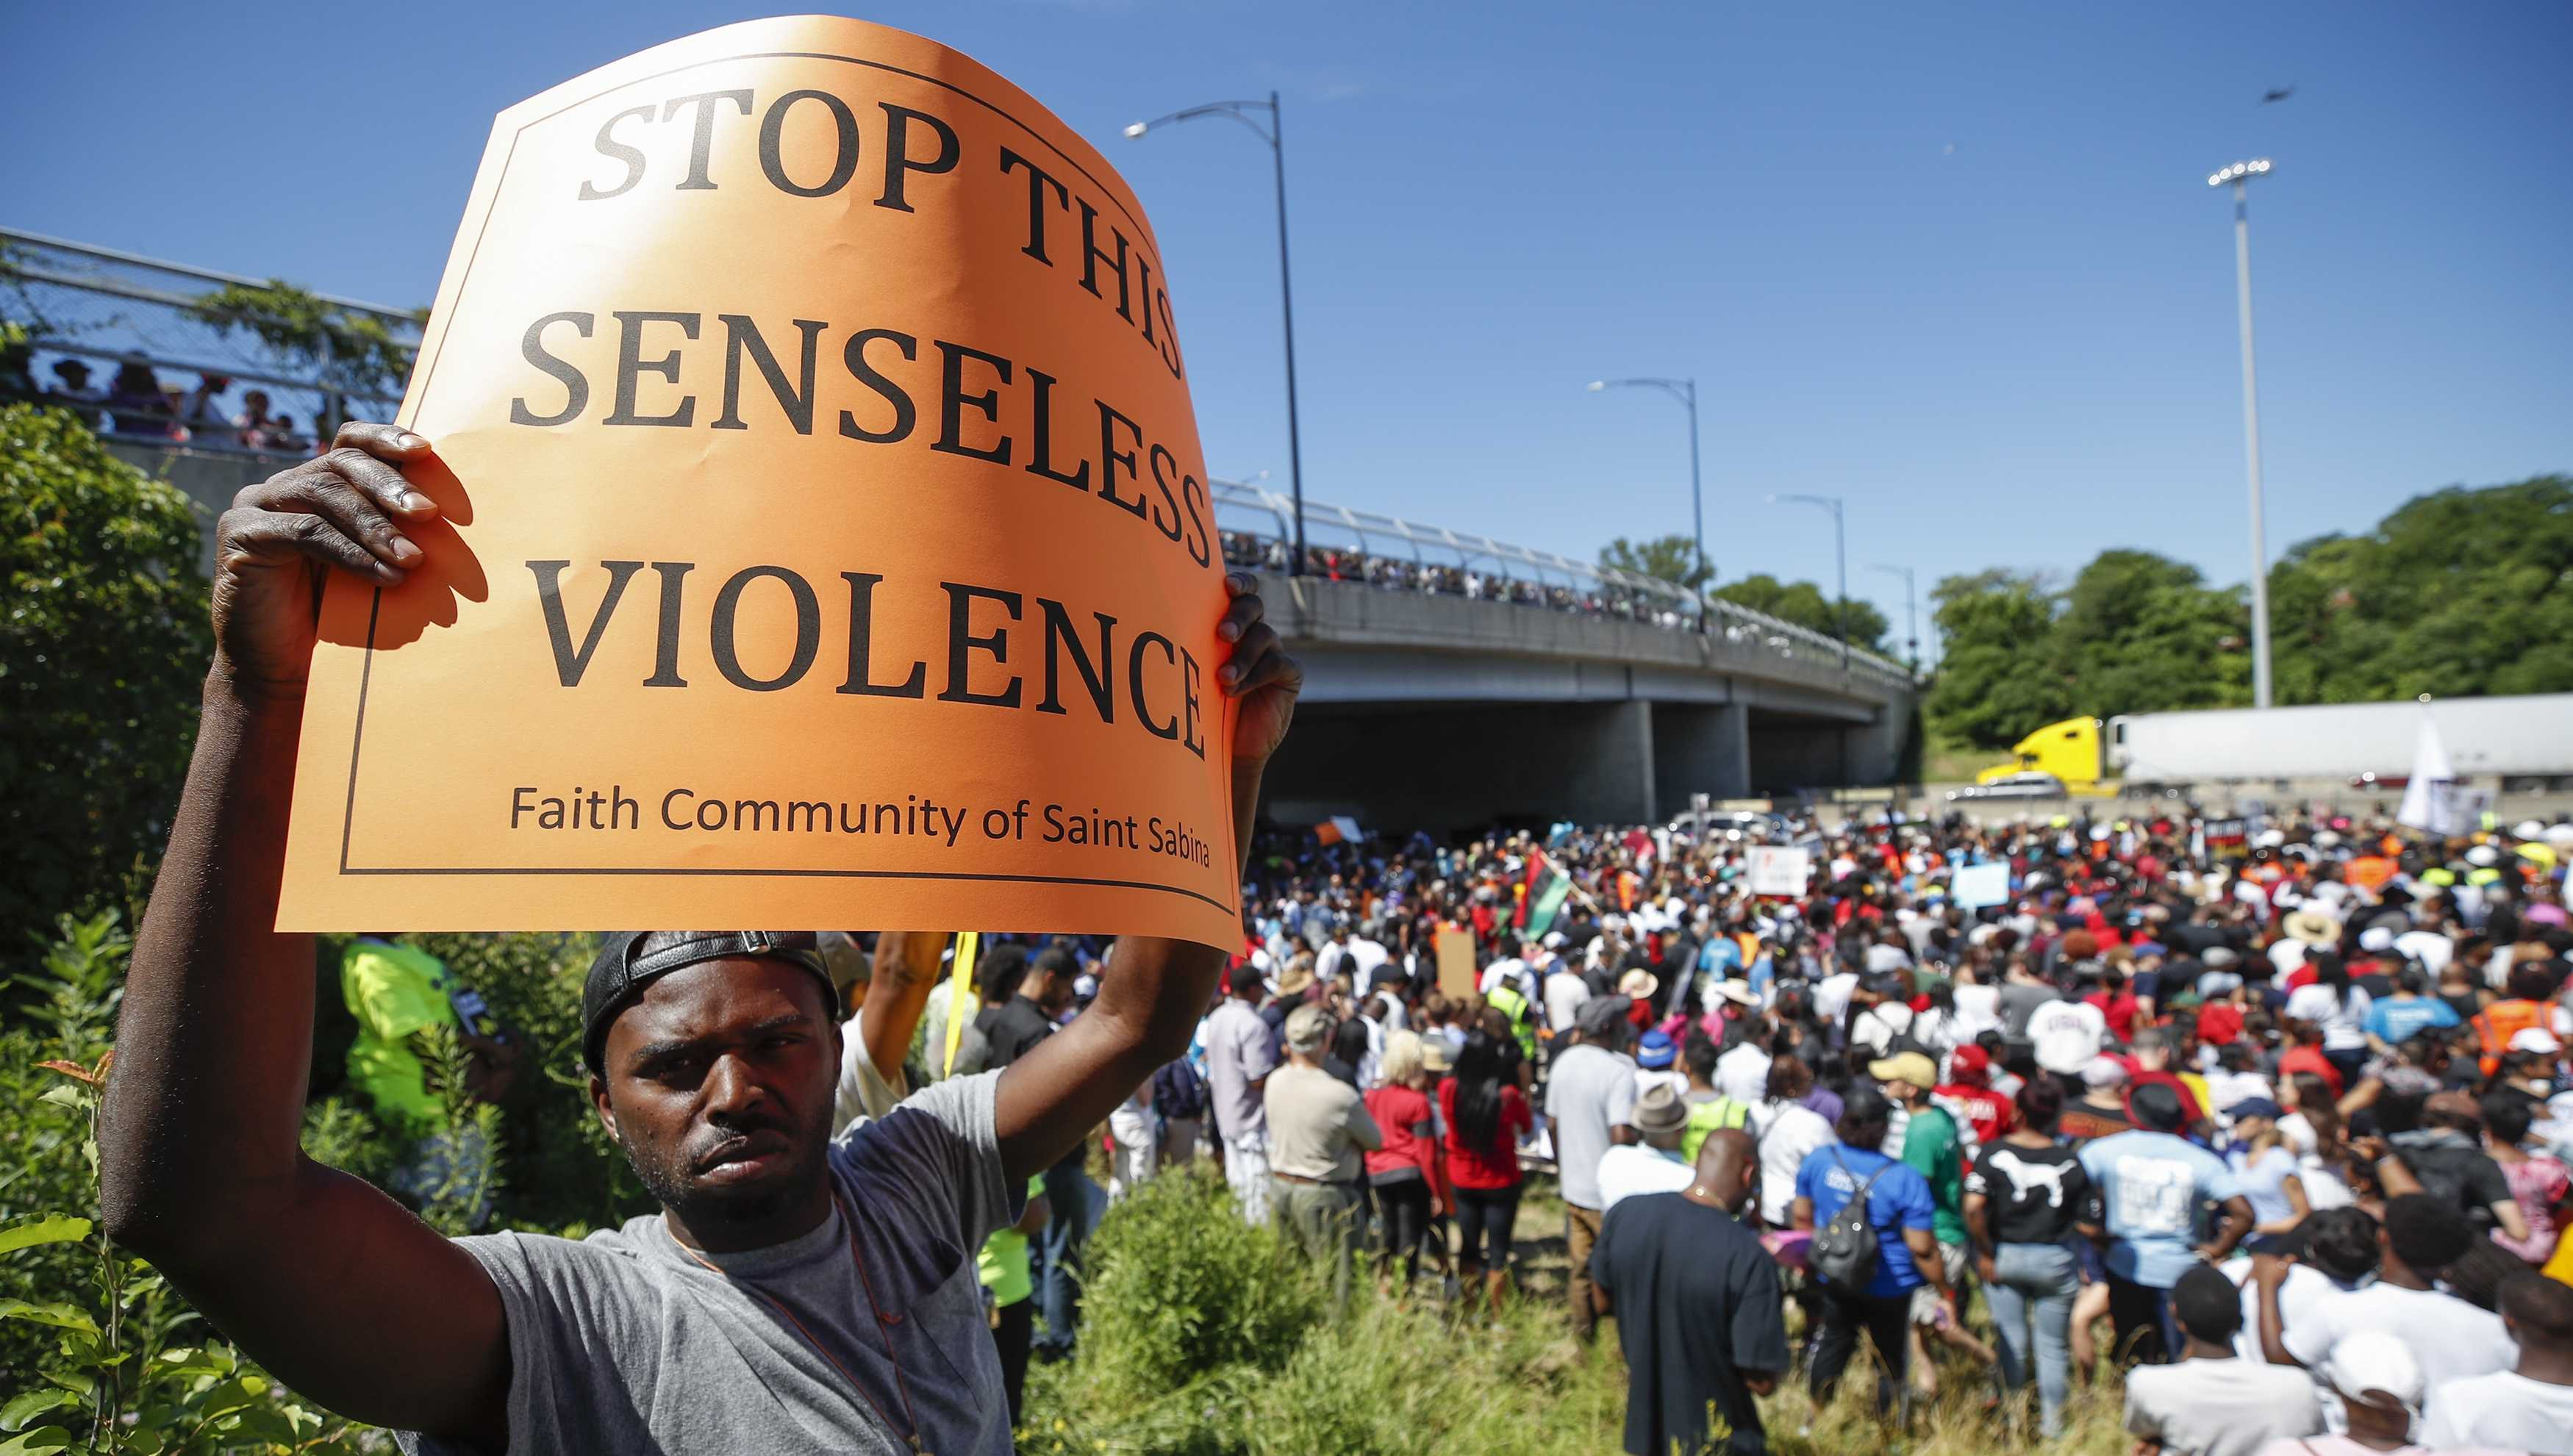 An activist holds a sign during march along Chicago Dan Ryan Expressway to protest violence in the city on July 7, 2018 in Chicago, Illinois.